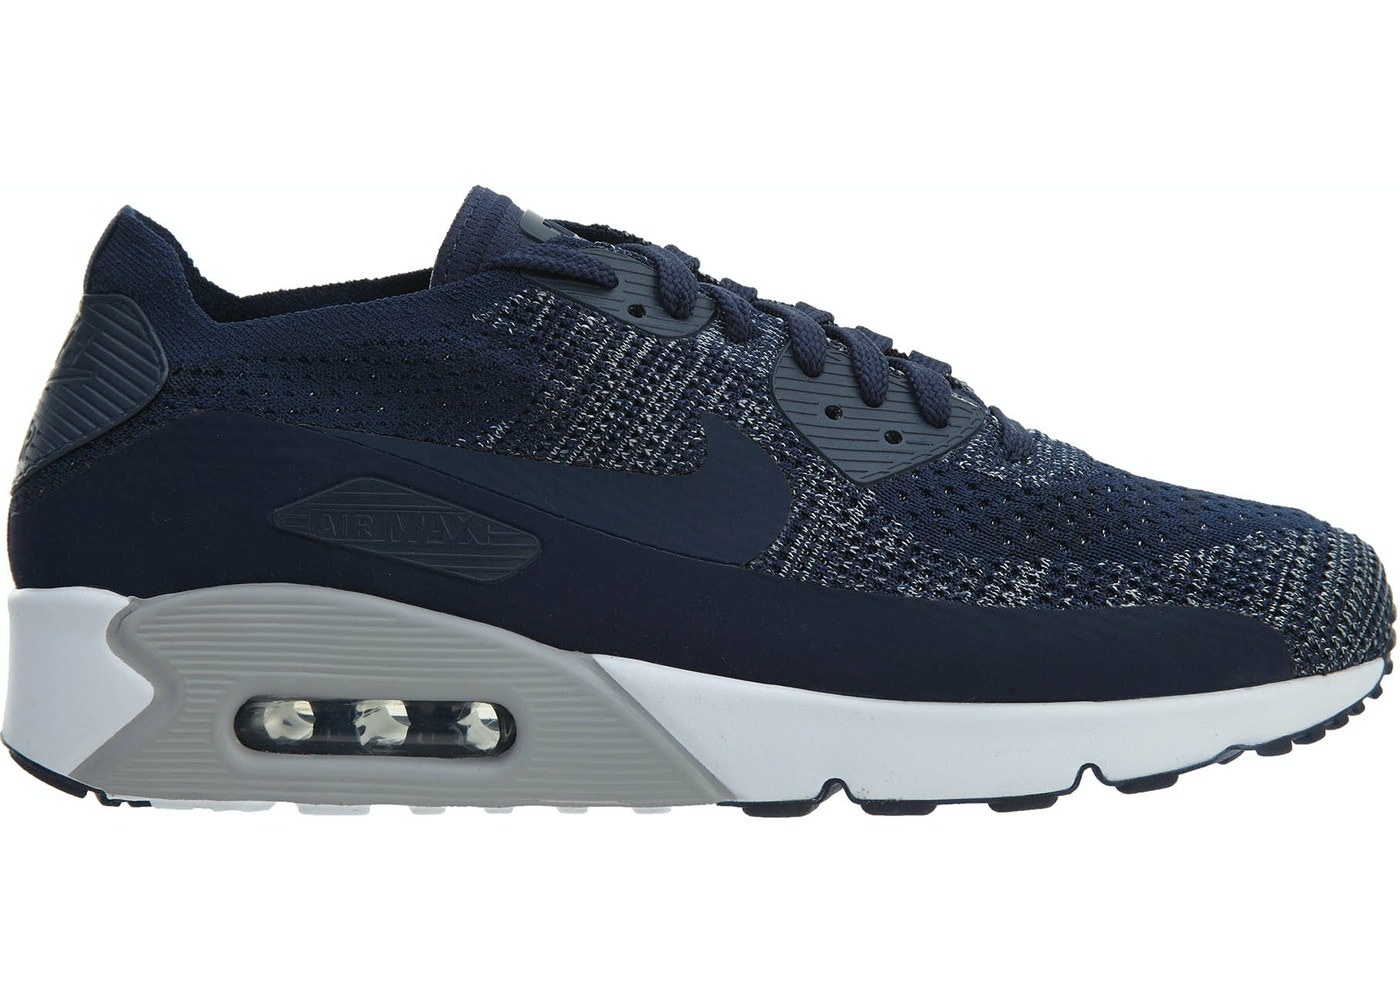 92bc1750f075 Air Max 90 Ultra 2.0 Flyknit College Navy College Navy - 875943-401